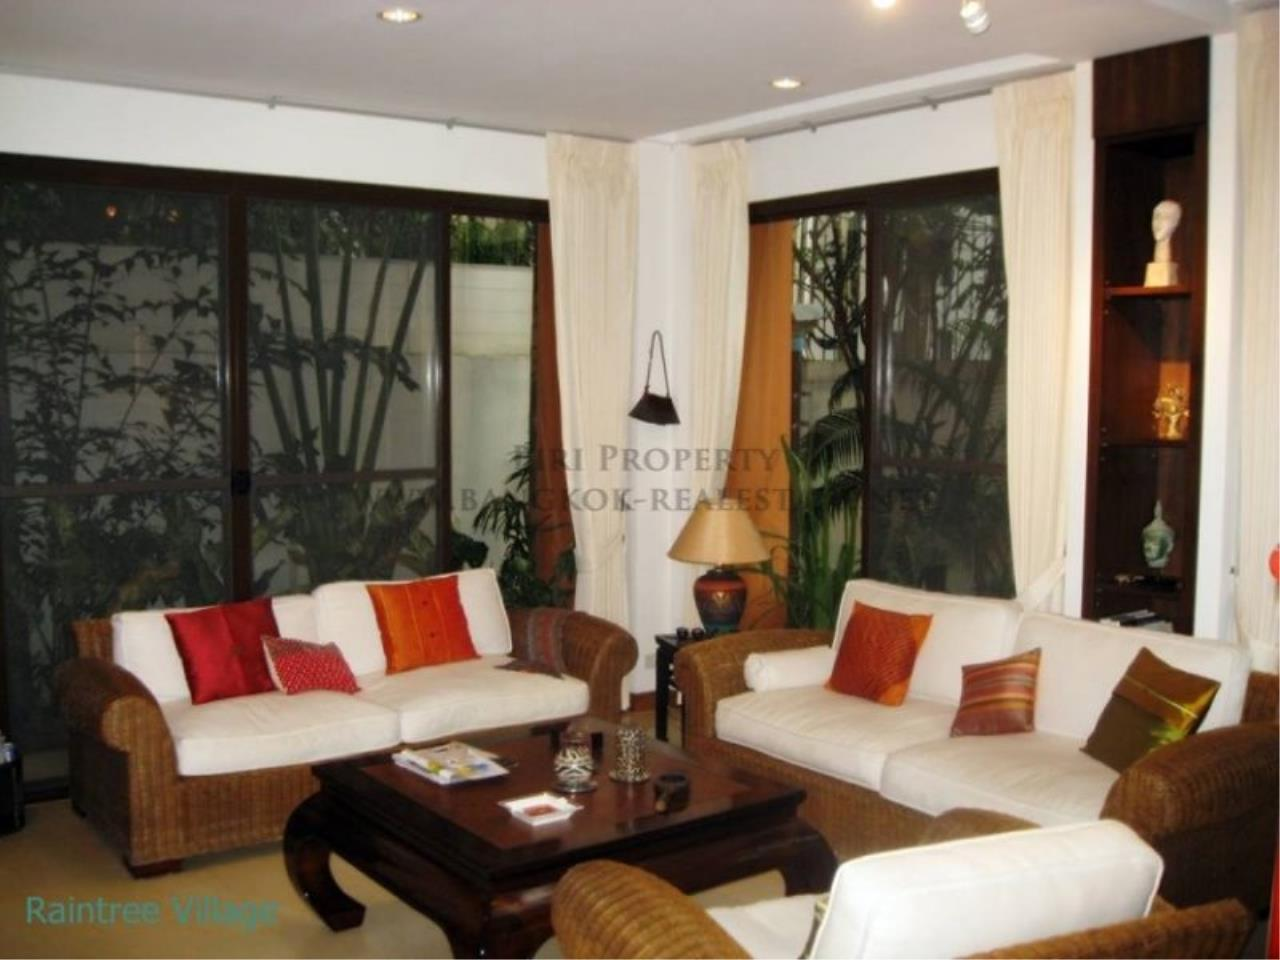 Piri Property Agency's Townhouse Apartment nearby Emporium for Rent - 3 plus 1 Bedroom 7